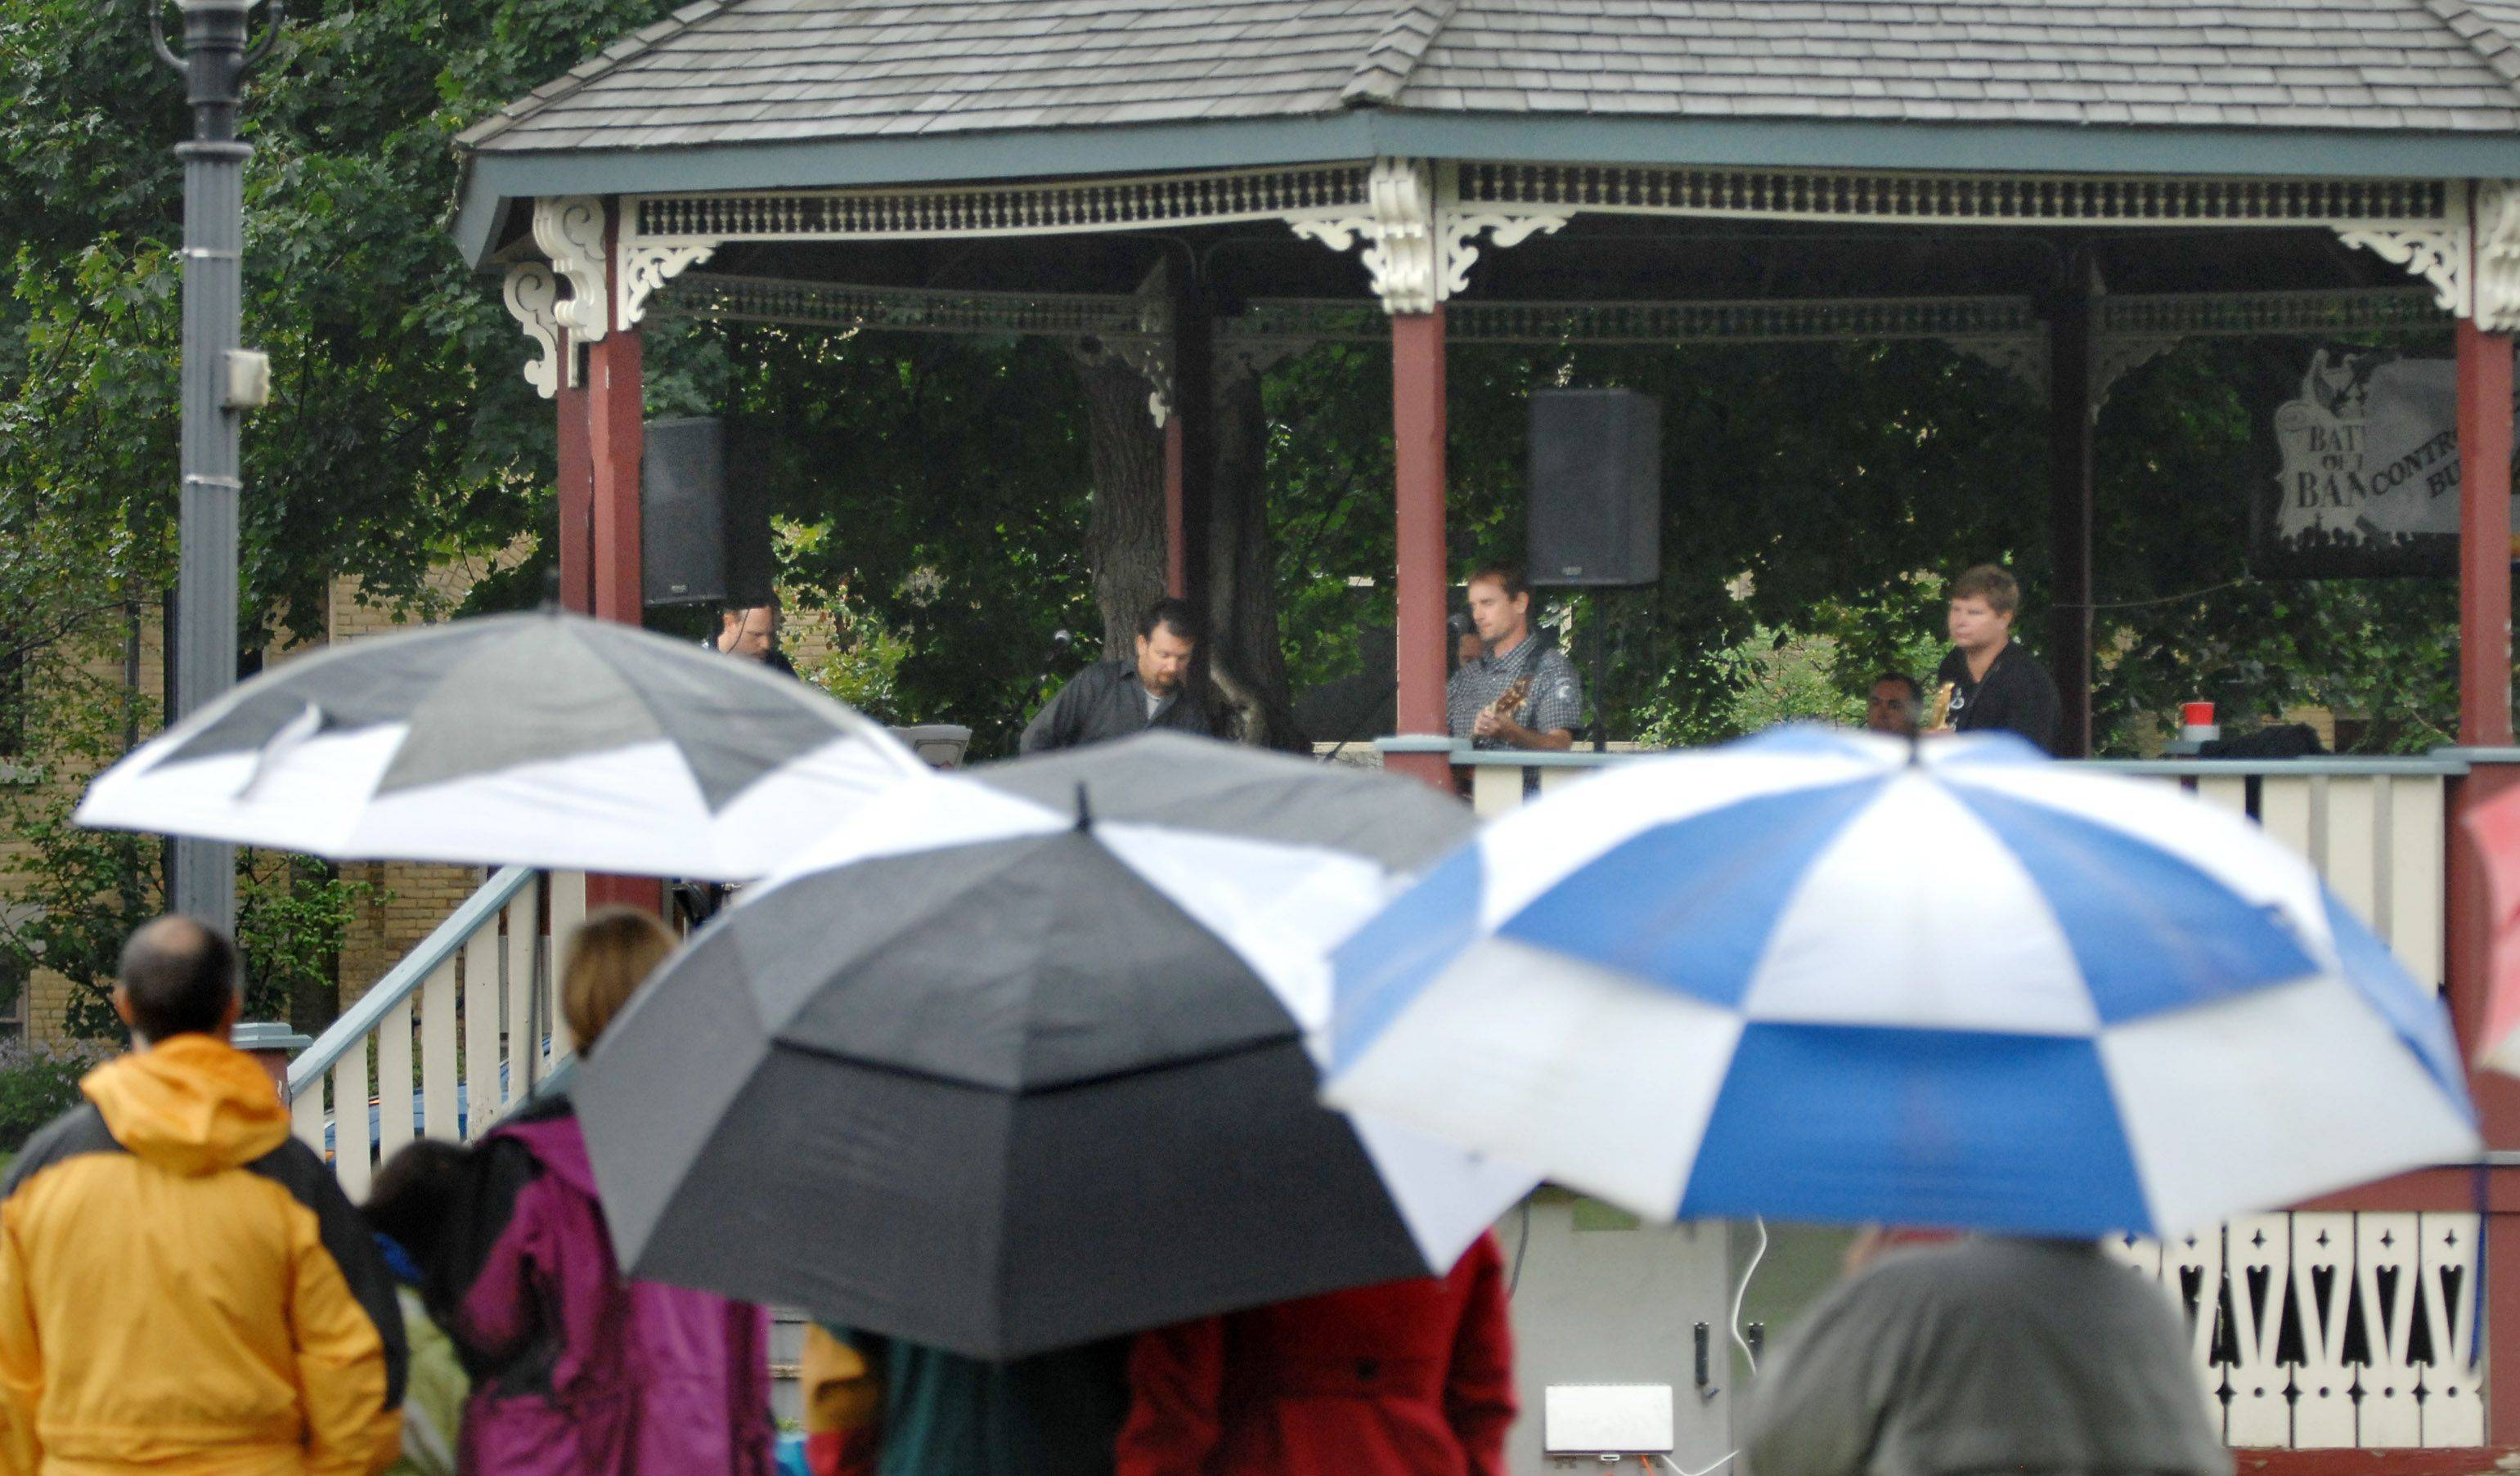 Umbrellas fill Grafelman Park as local bands play on the pavilion during a rainy Heritage Festival Sunday in West Dundee. The weather canceled the parade, but the festival remained open.